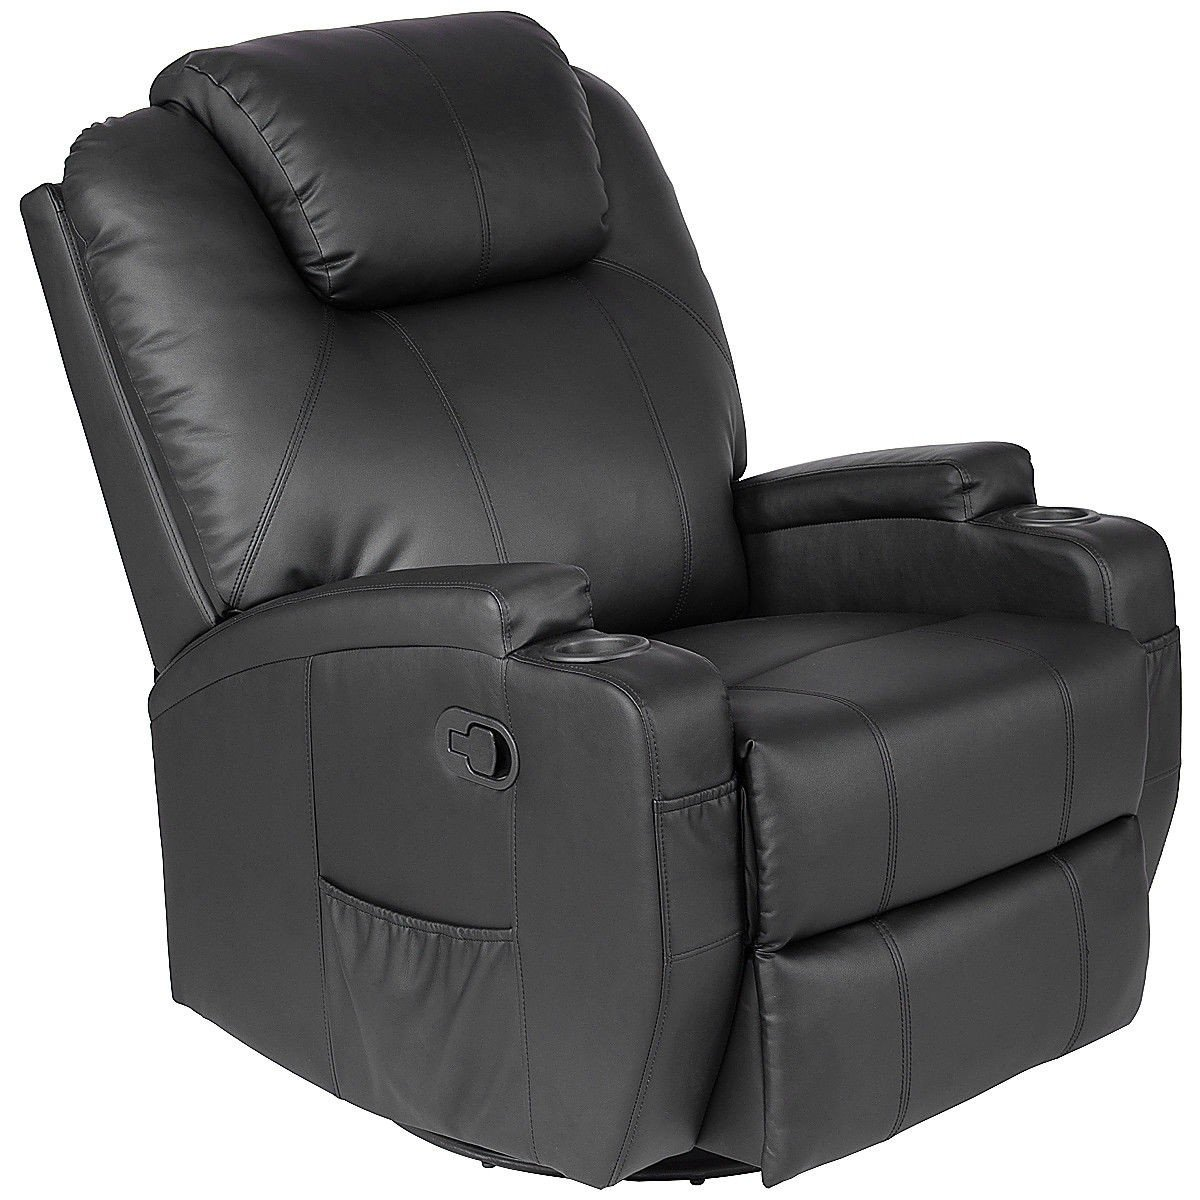 Manumotive Massage Recliner Sofa Chair With Cup Holder Ships Free Reclining Sofa